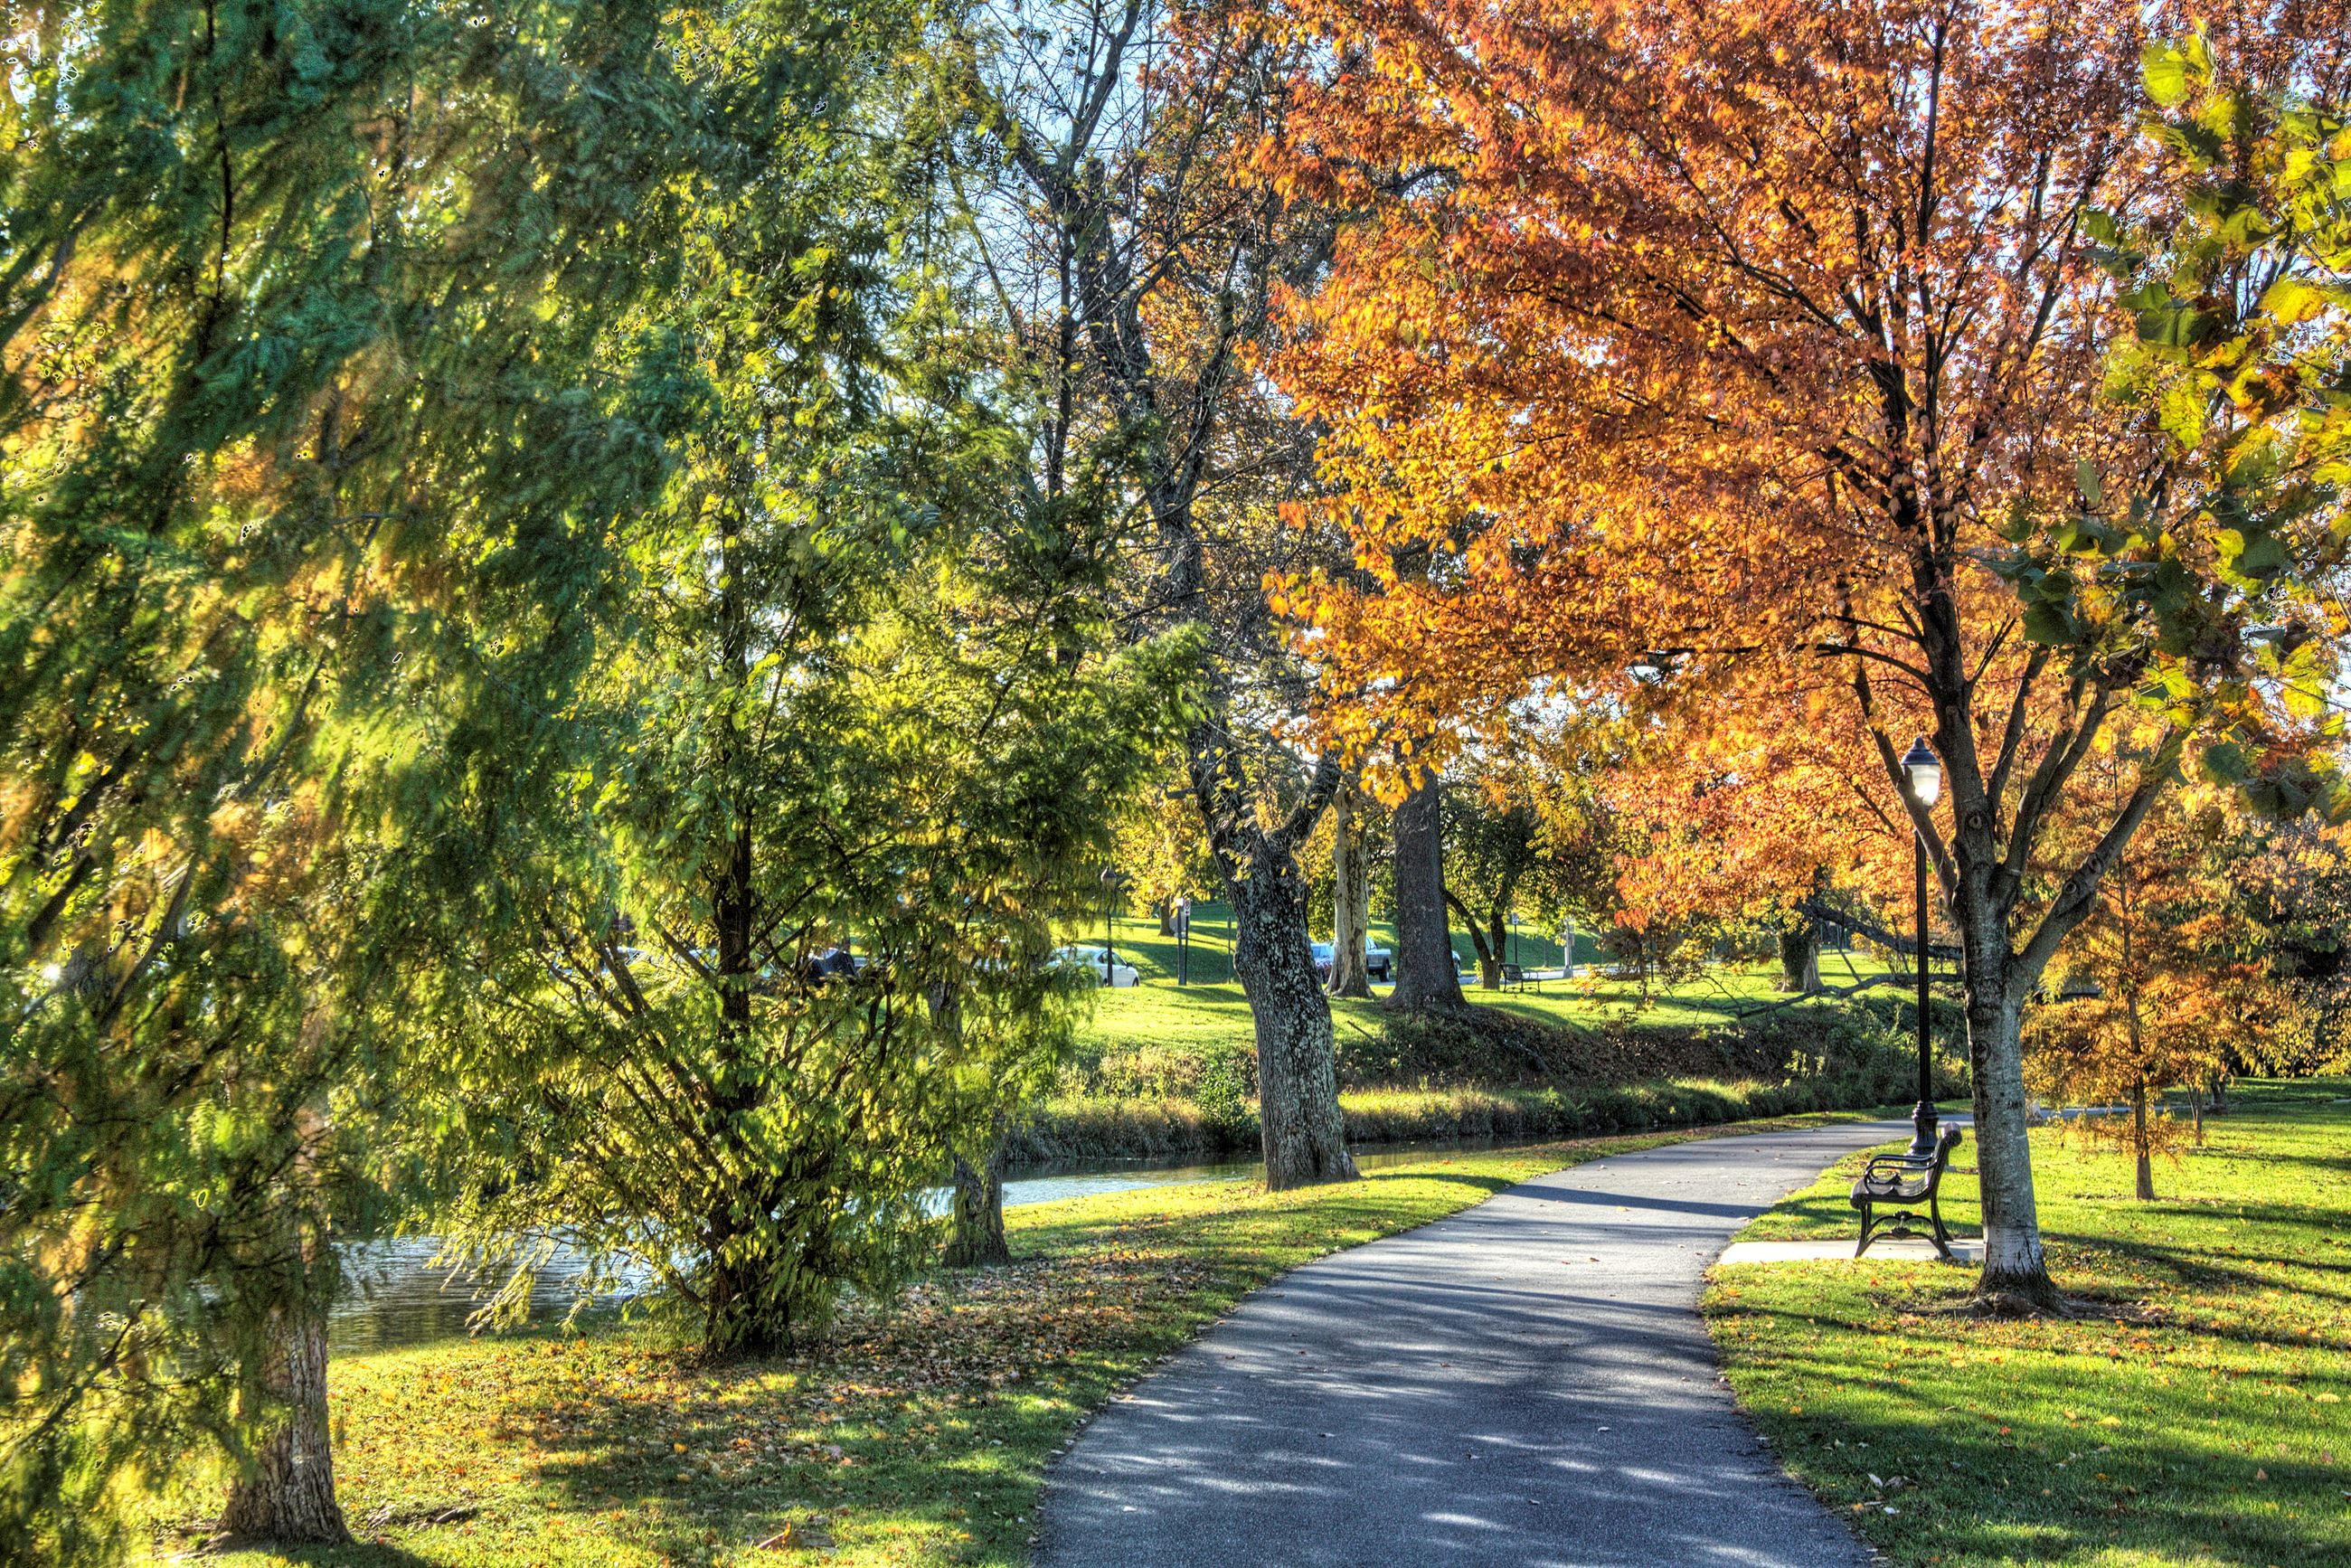 Paved walkway through autumn trees along a small waterway